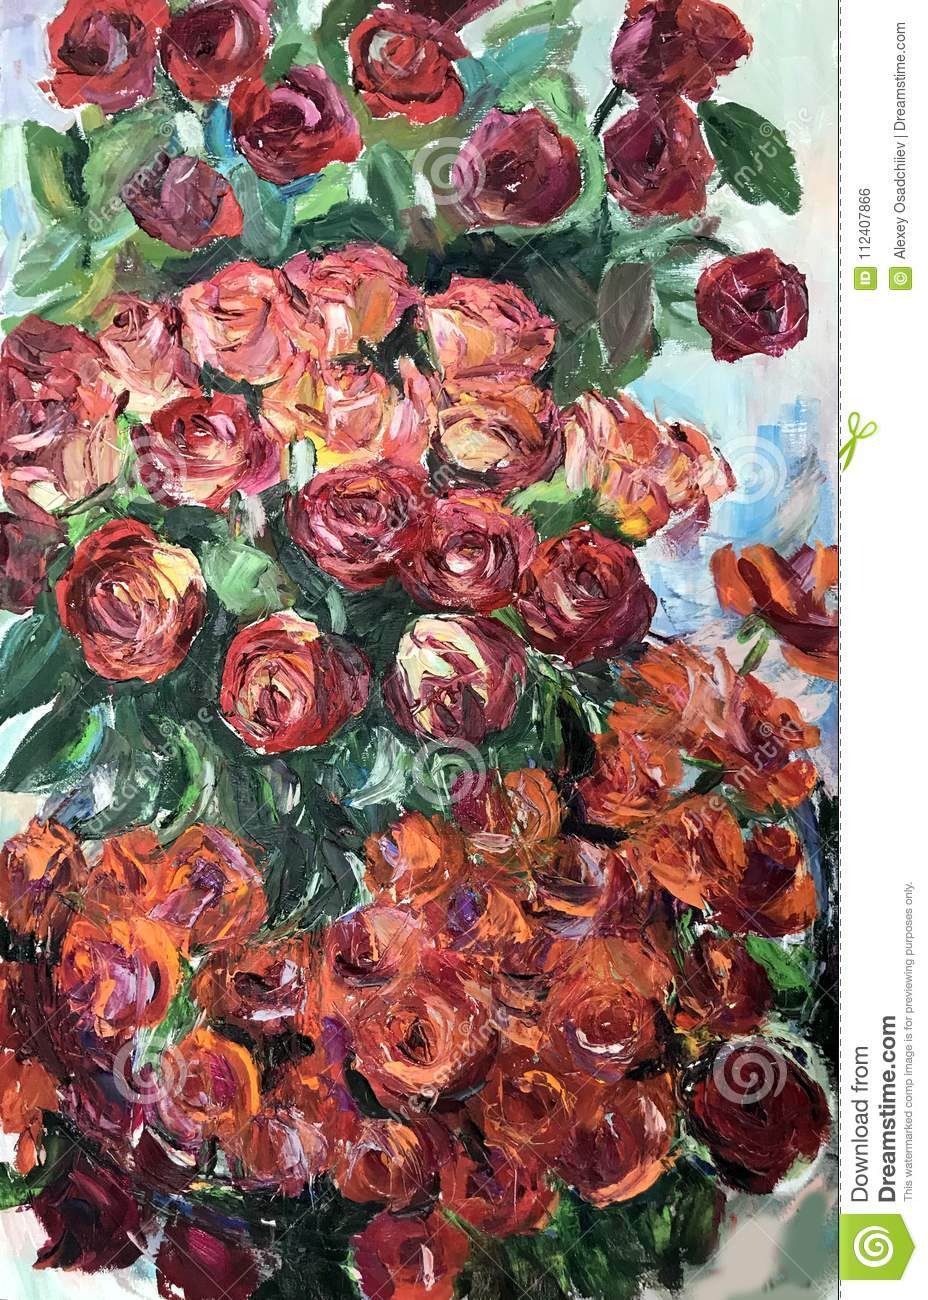 Drawing Of Red Orange Roses Flower Bouquet Stock Photo Image Of